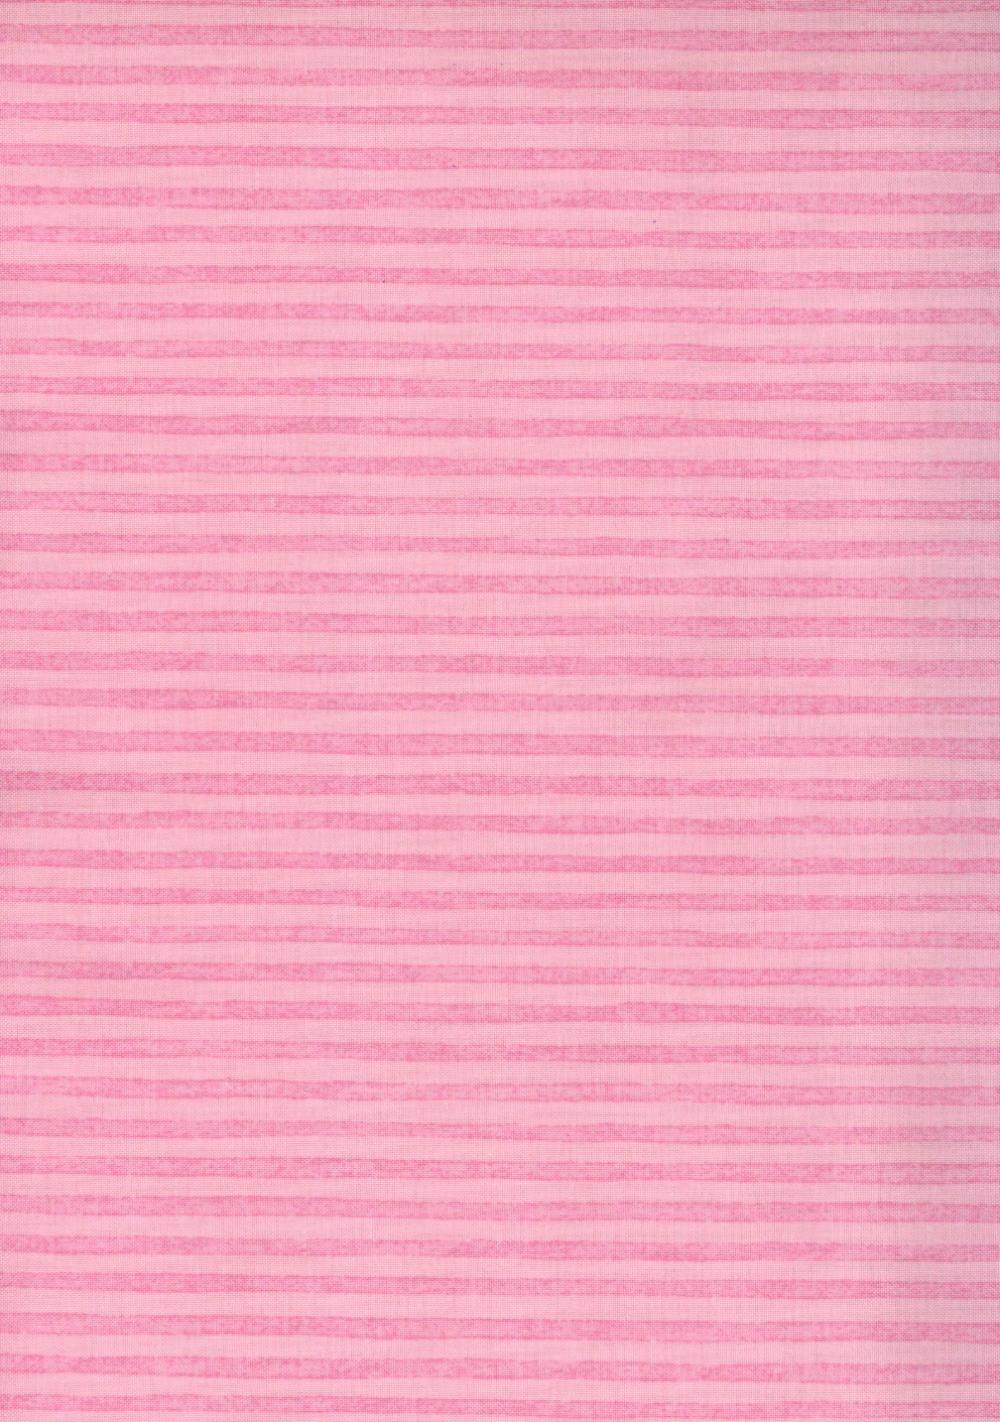 Pink Bunny Stripe Fabric by Bunnies by the Bay